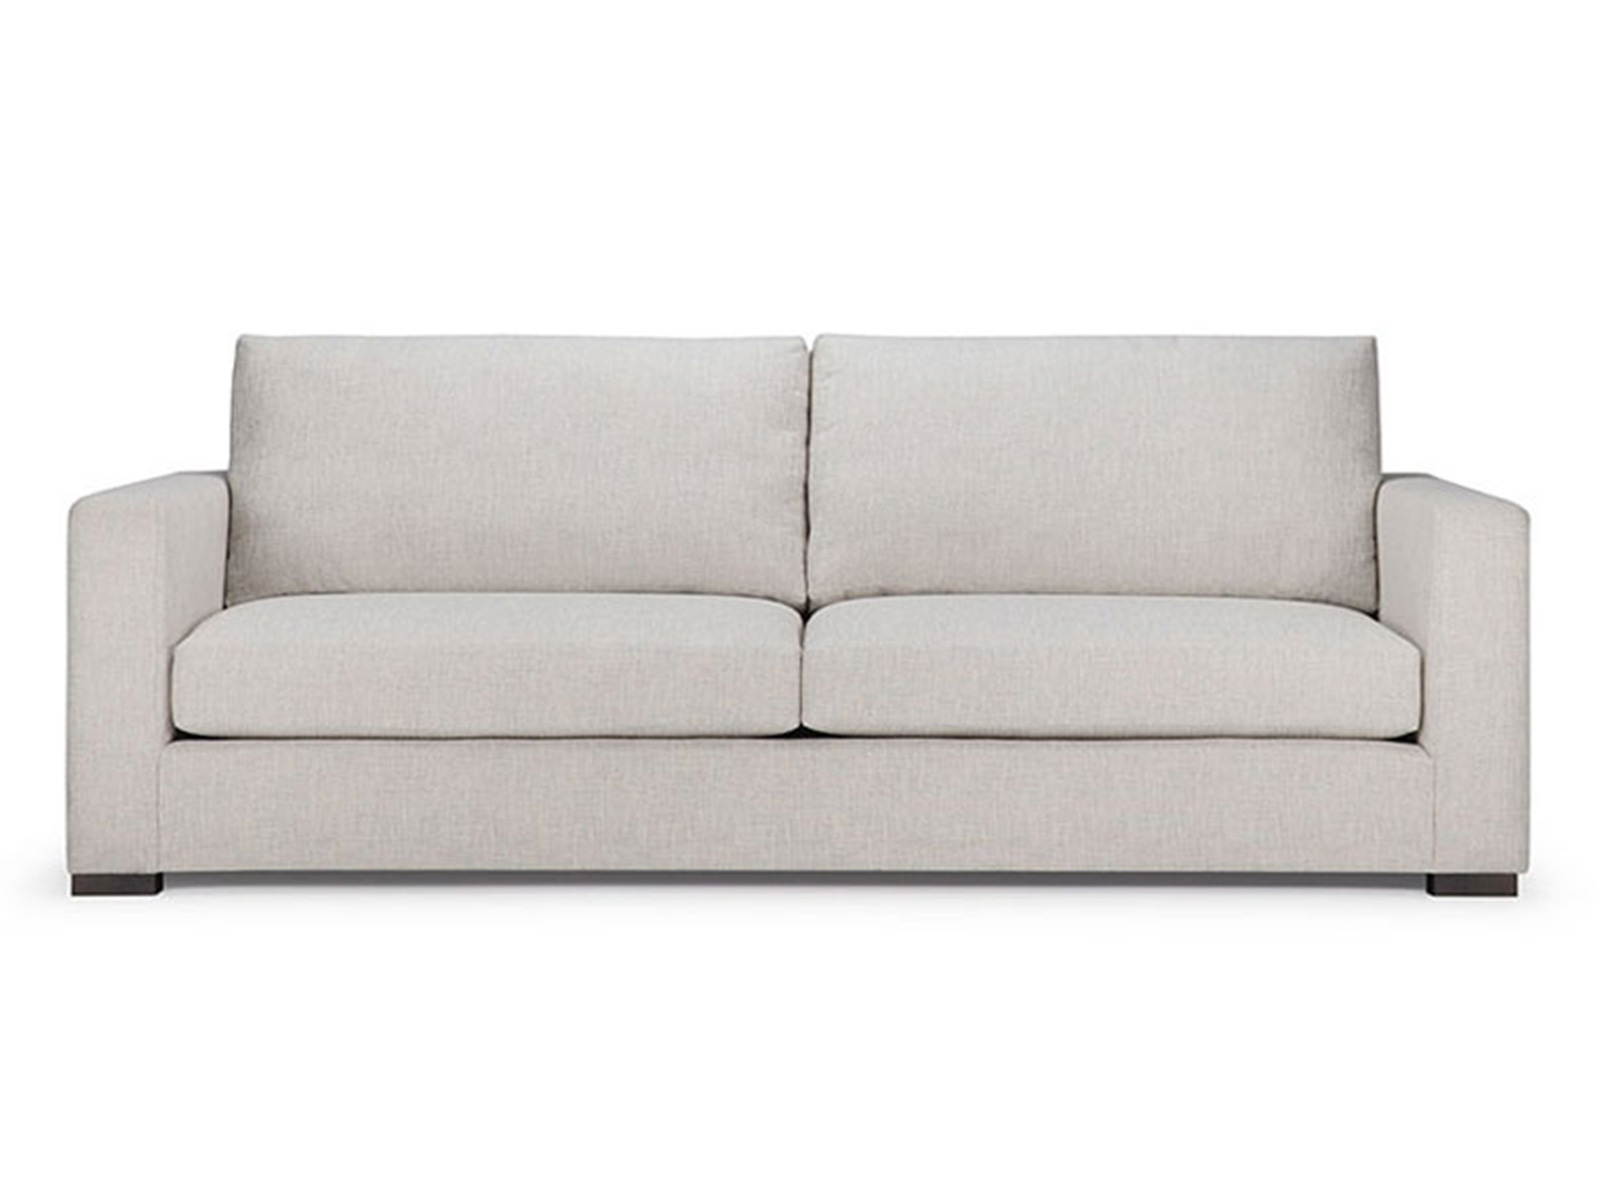 barrymore sofa costco beds trent ormes furniture